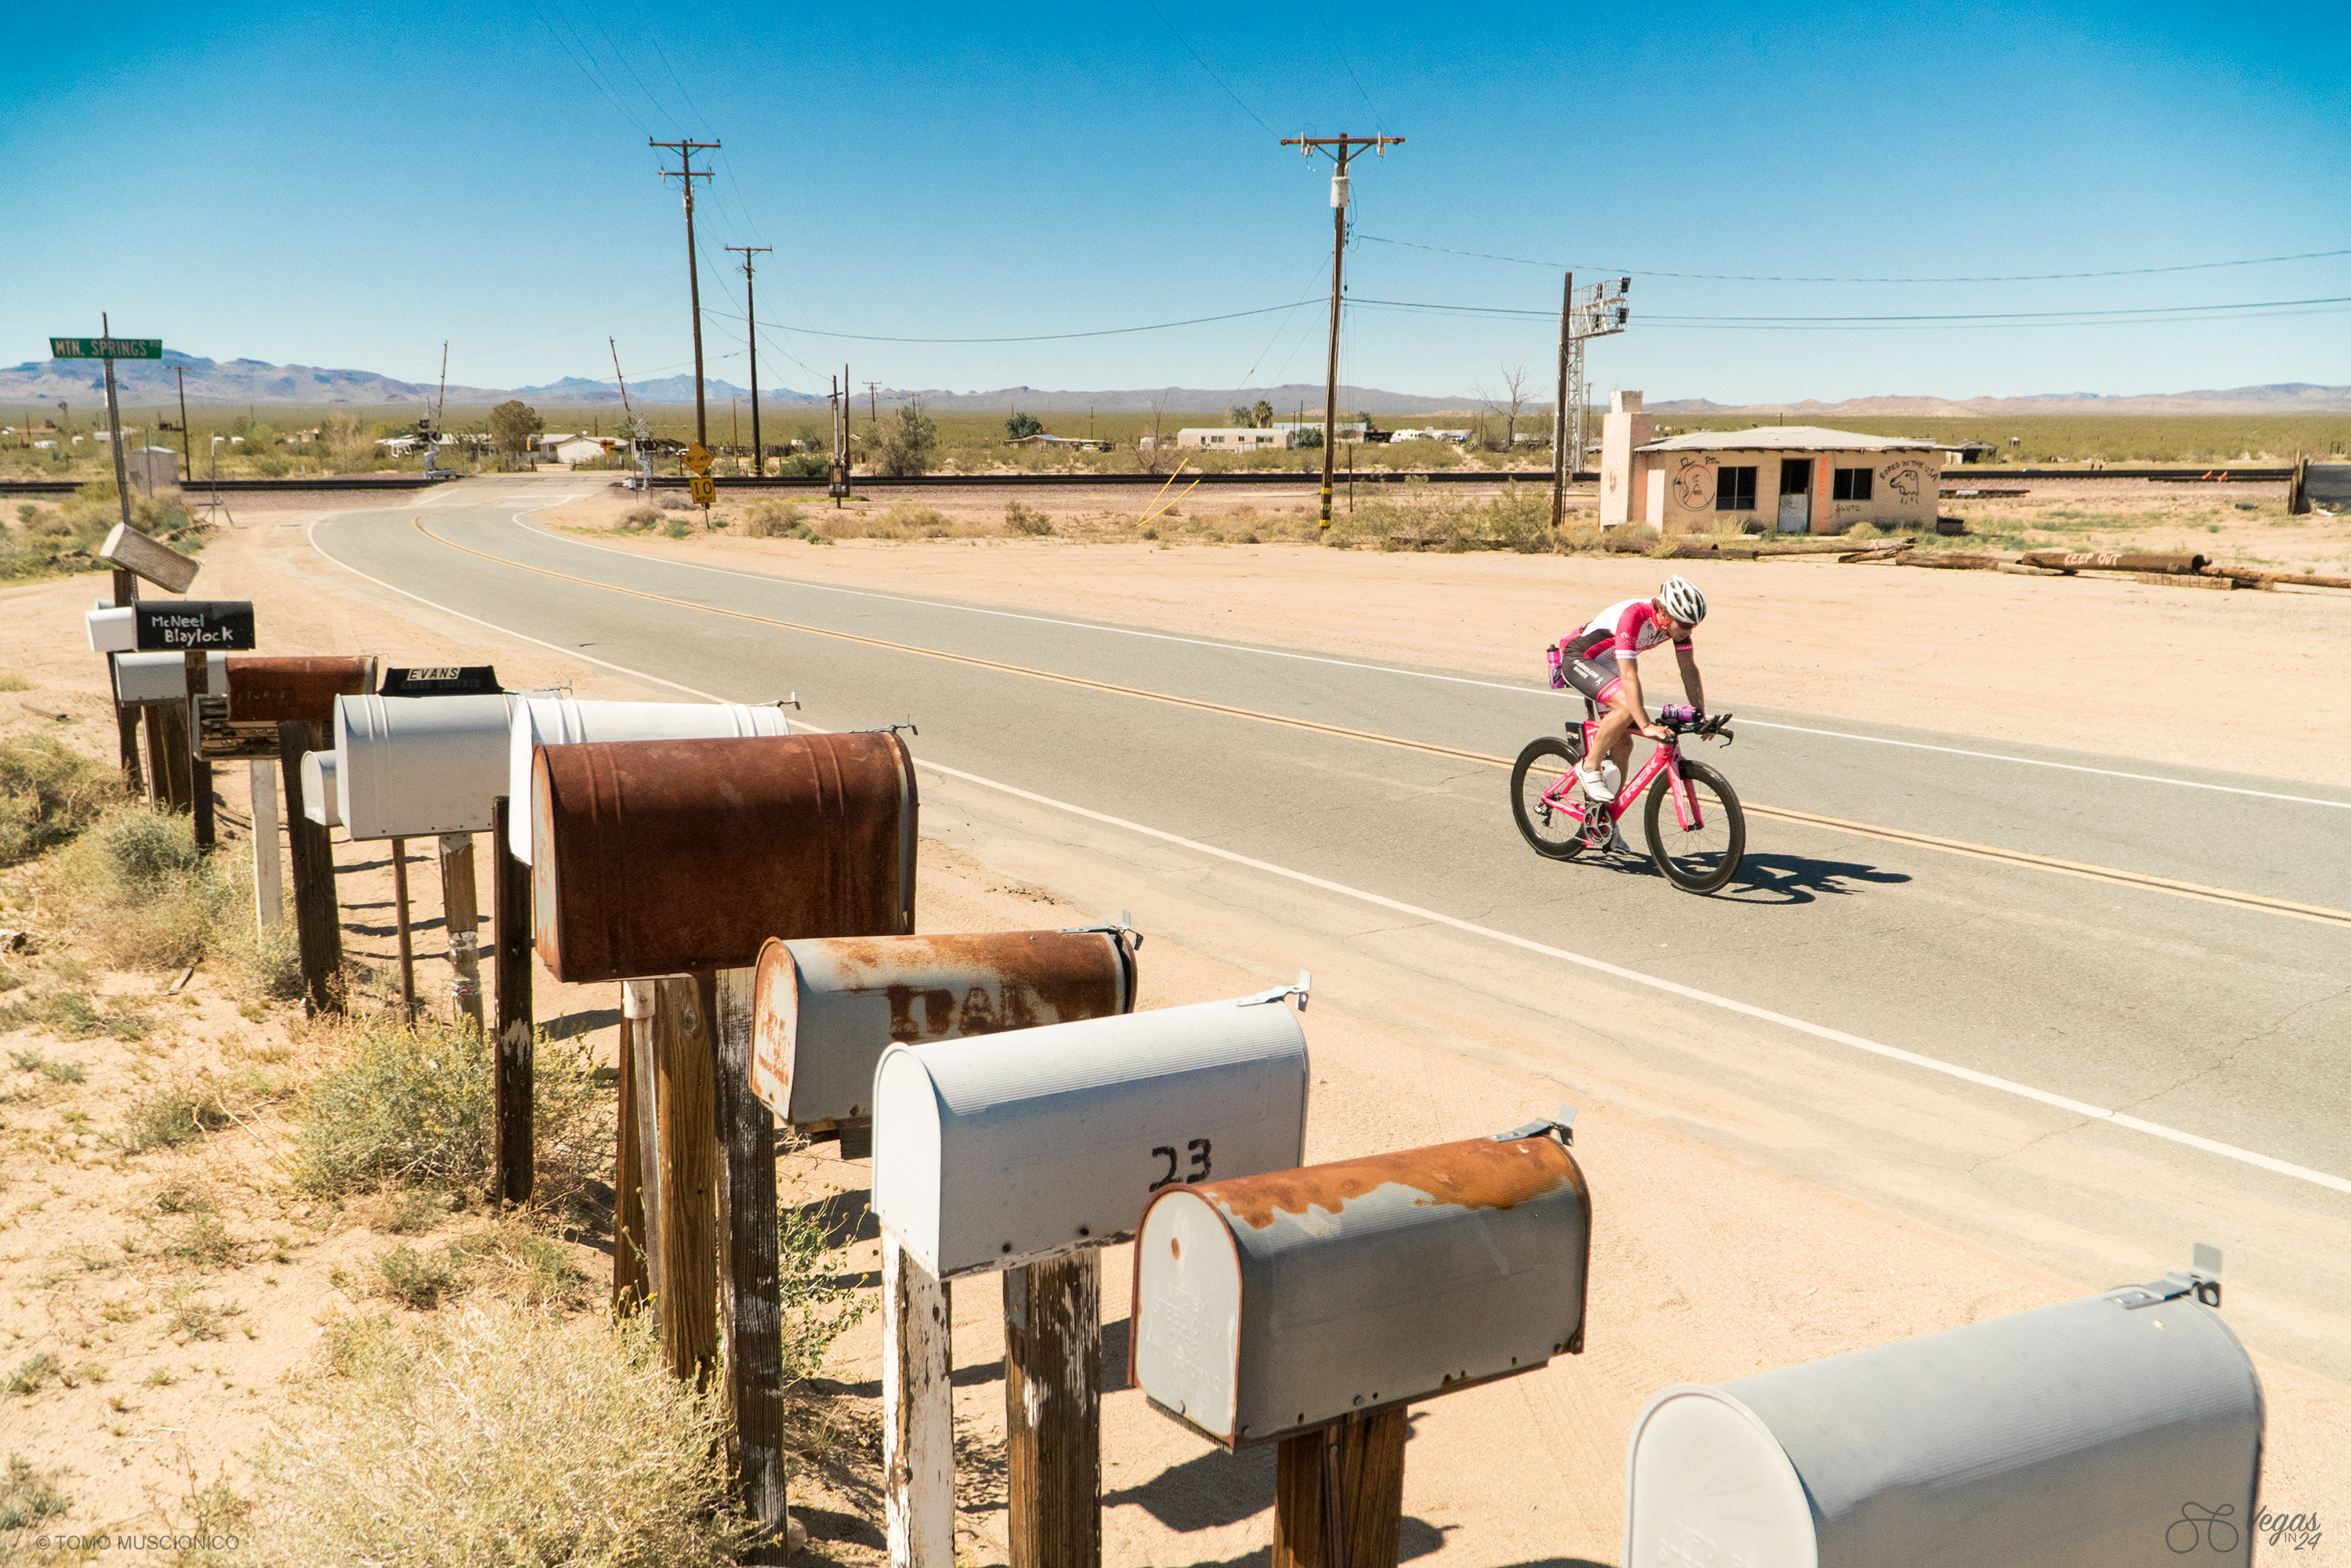 Andy continues on Route 66 towards the Nevada state border. Rusted mailboxes along the road catapult us back into time - nobody picks up mail here anymore.